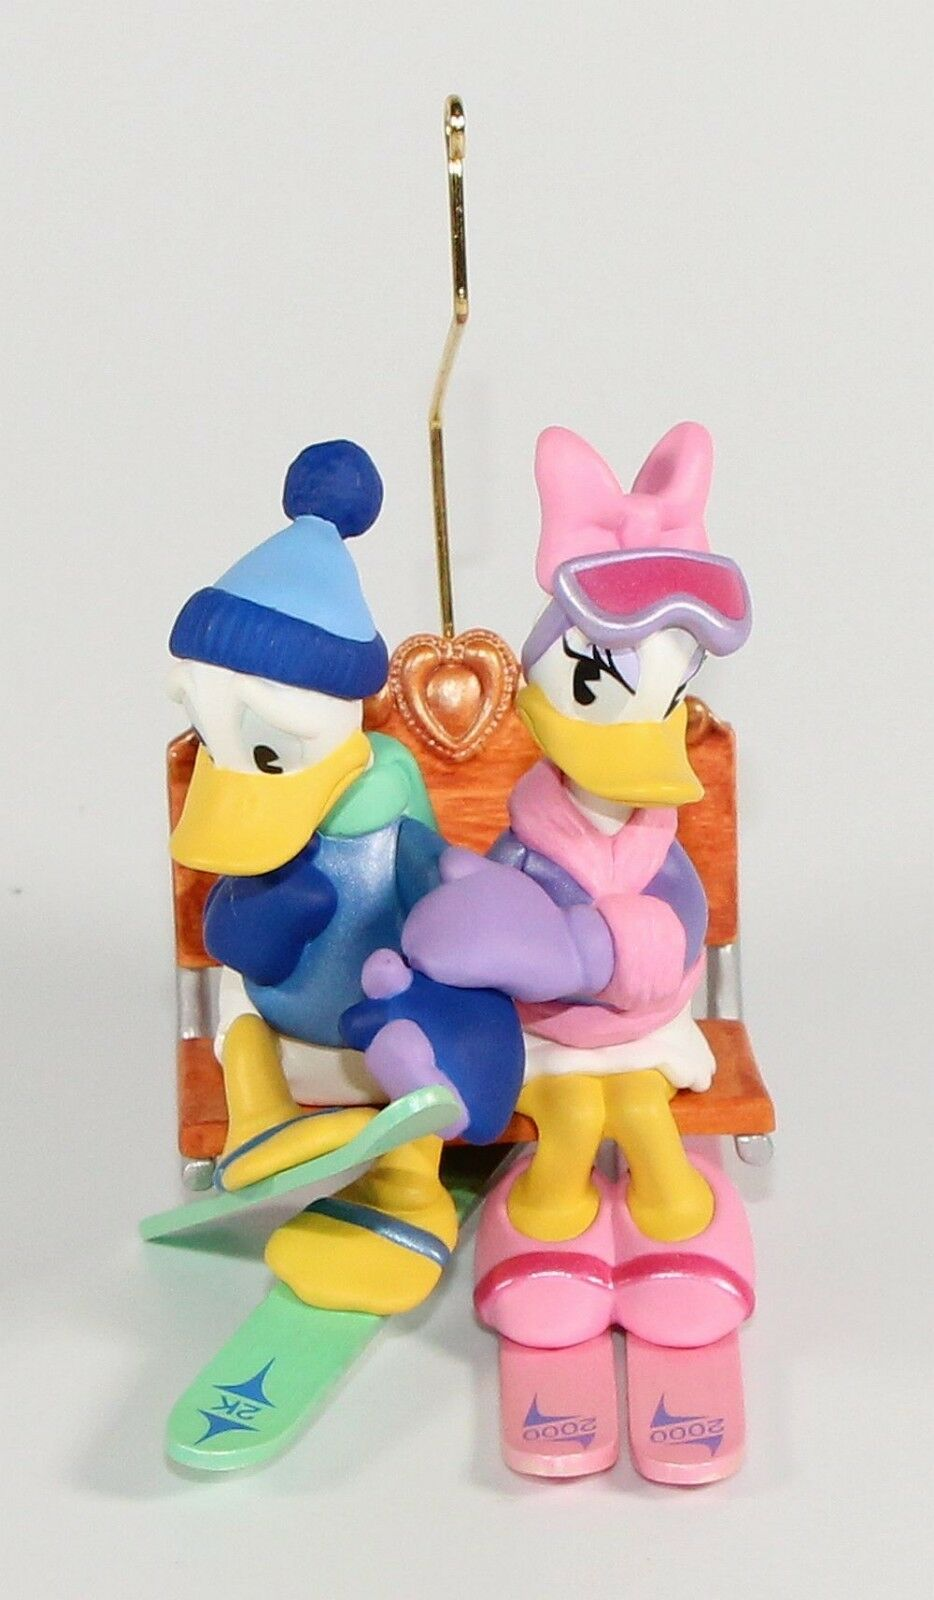 2000 Romantic Vacations #3 -Donald & Daisy at Lover's Lodge